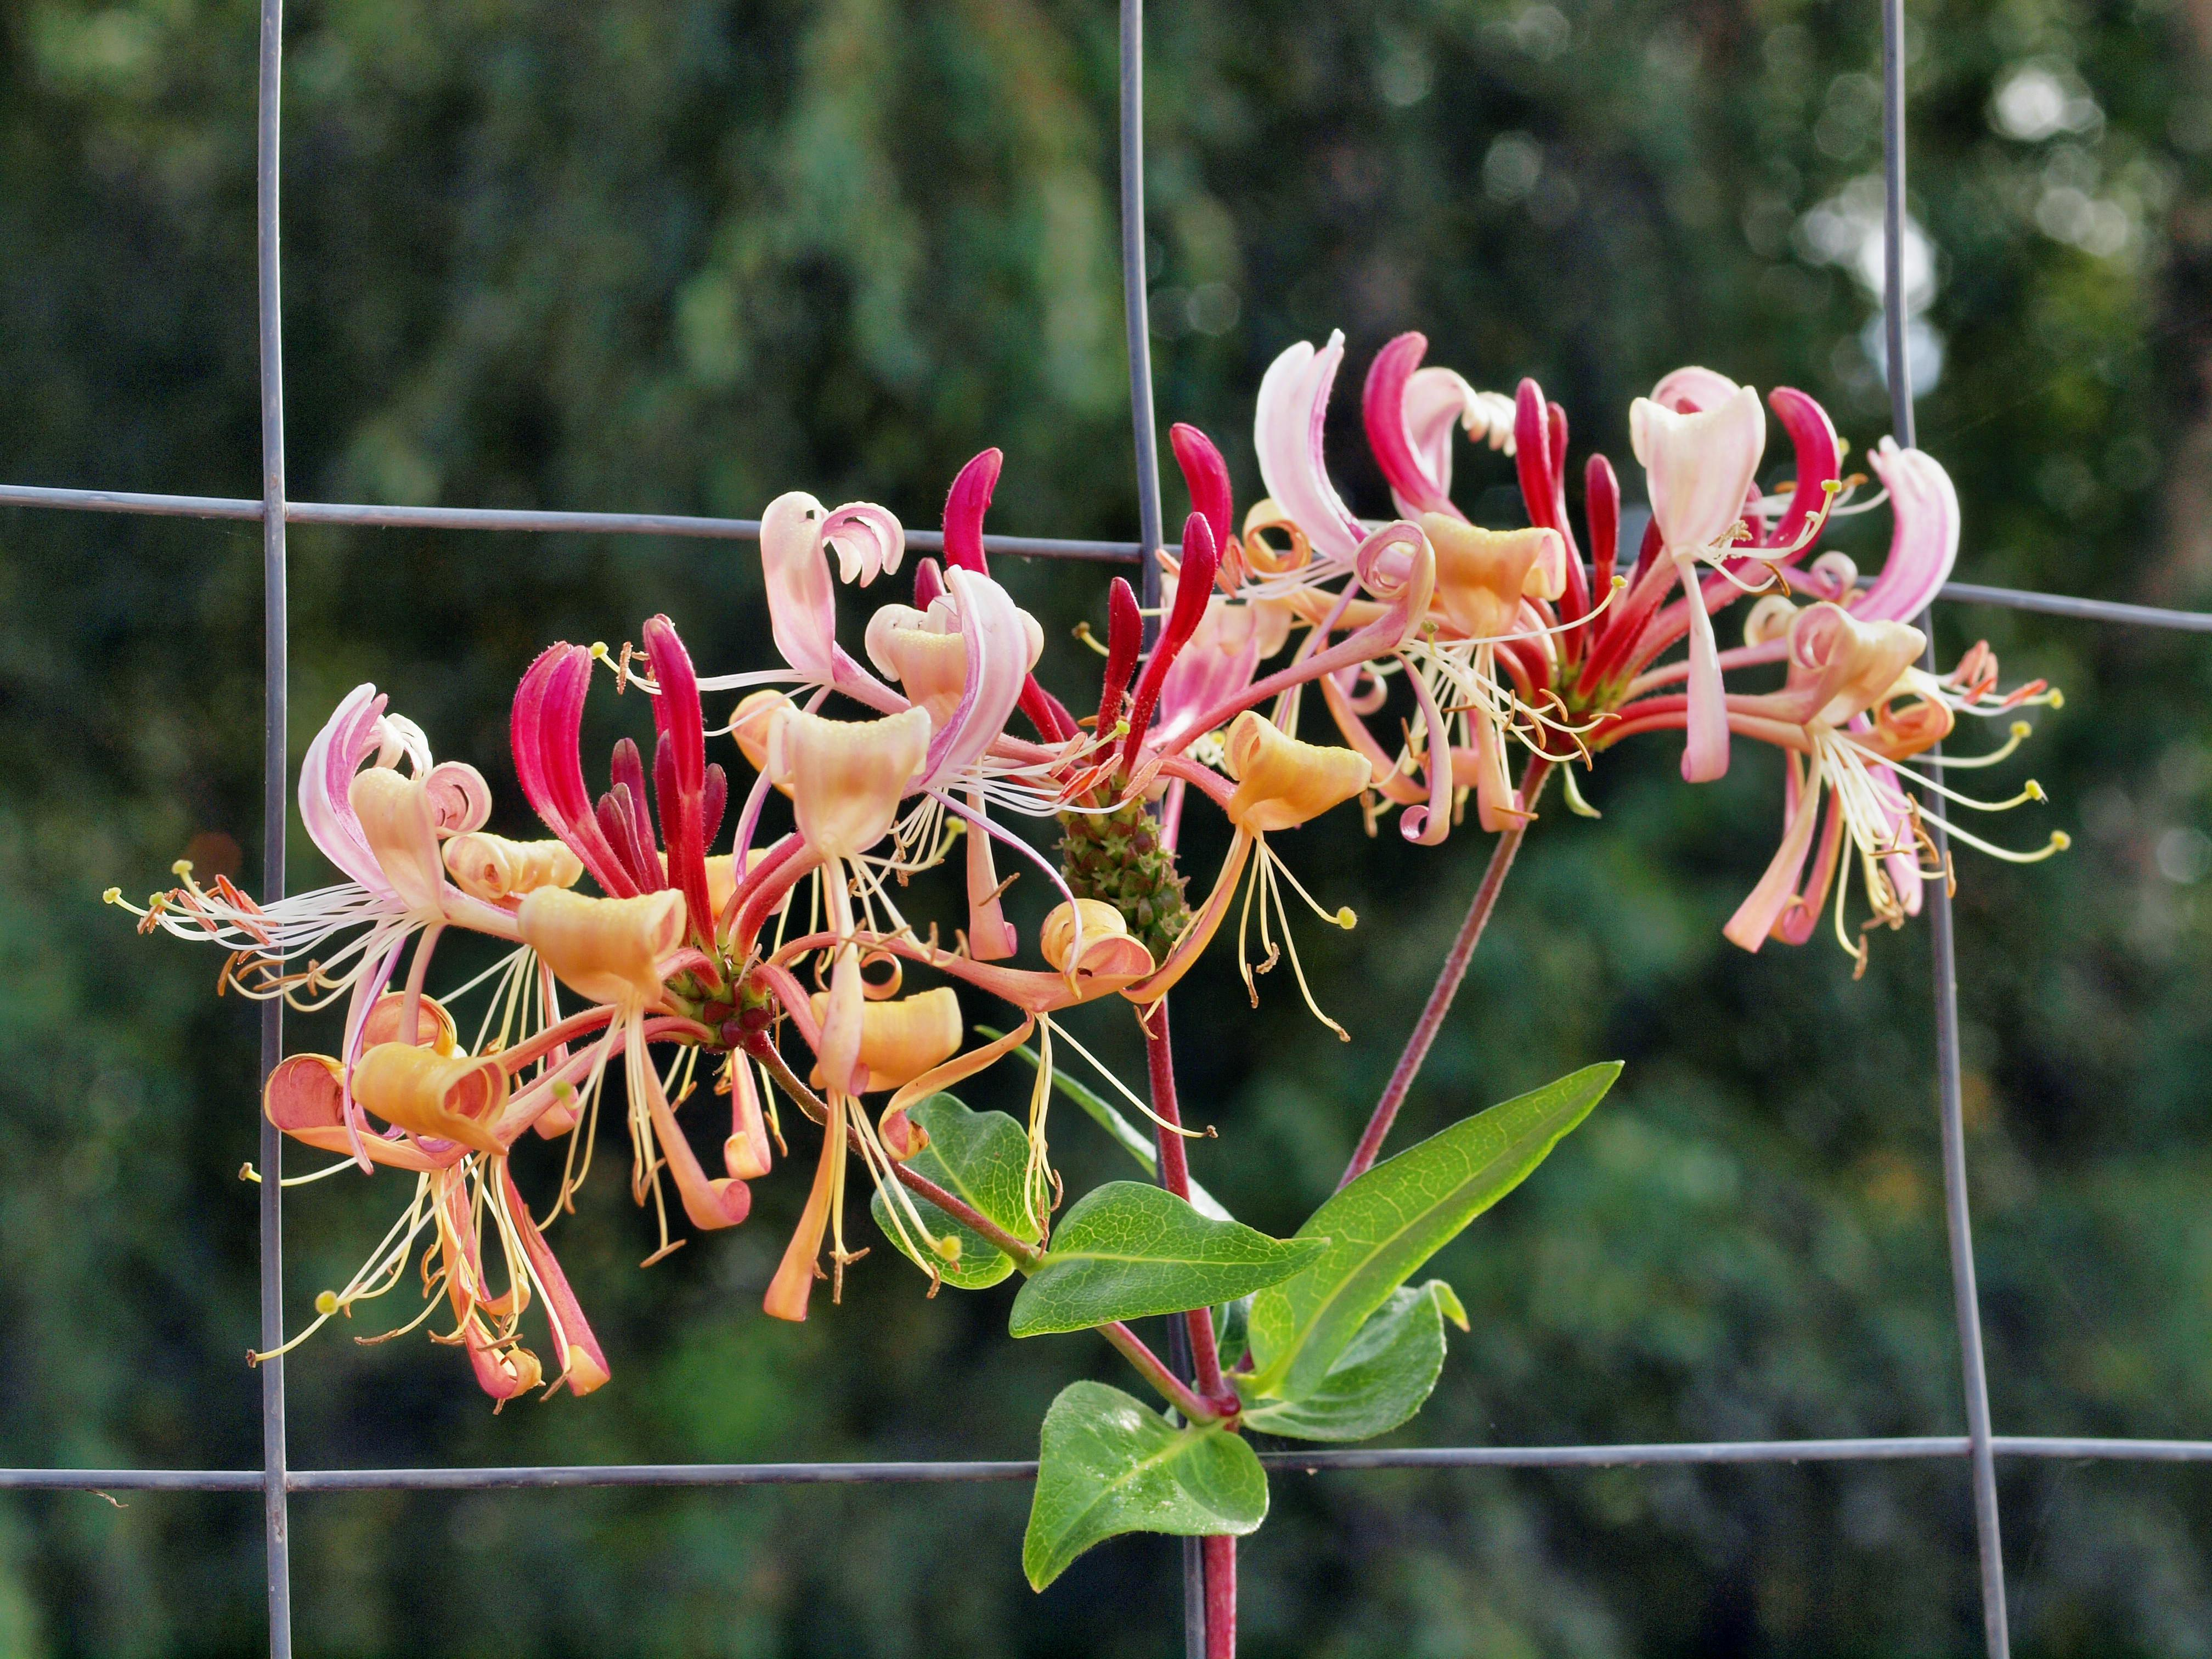 This should be Lonicera.jpeg.  Is it missing?